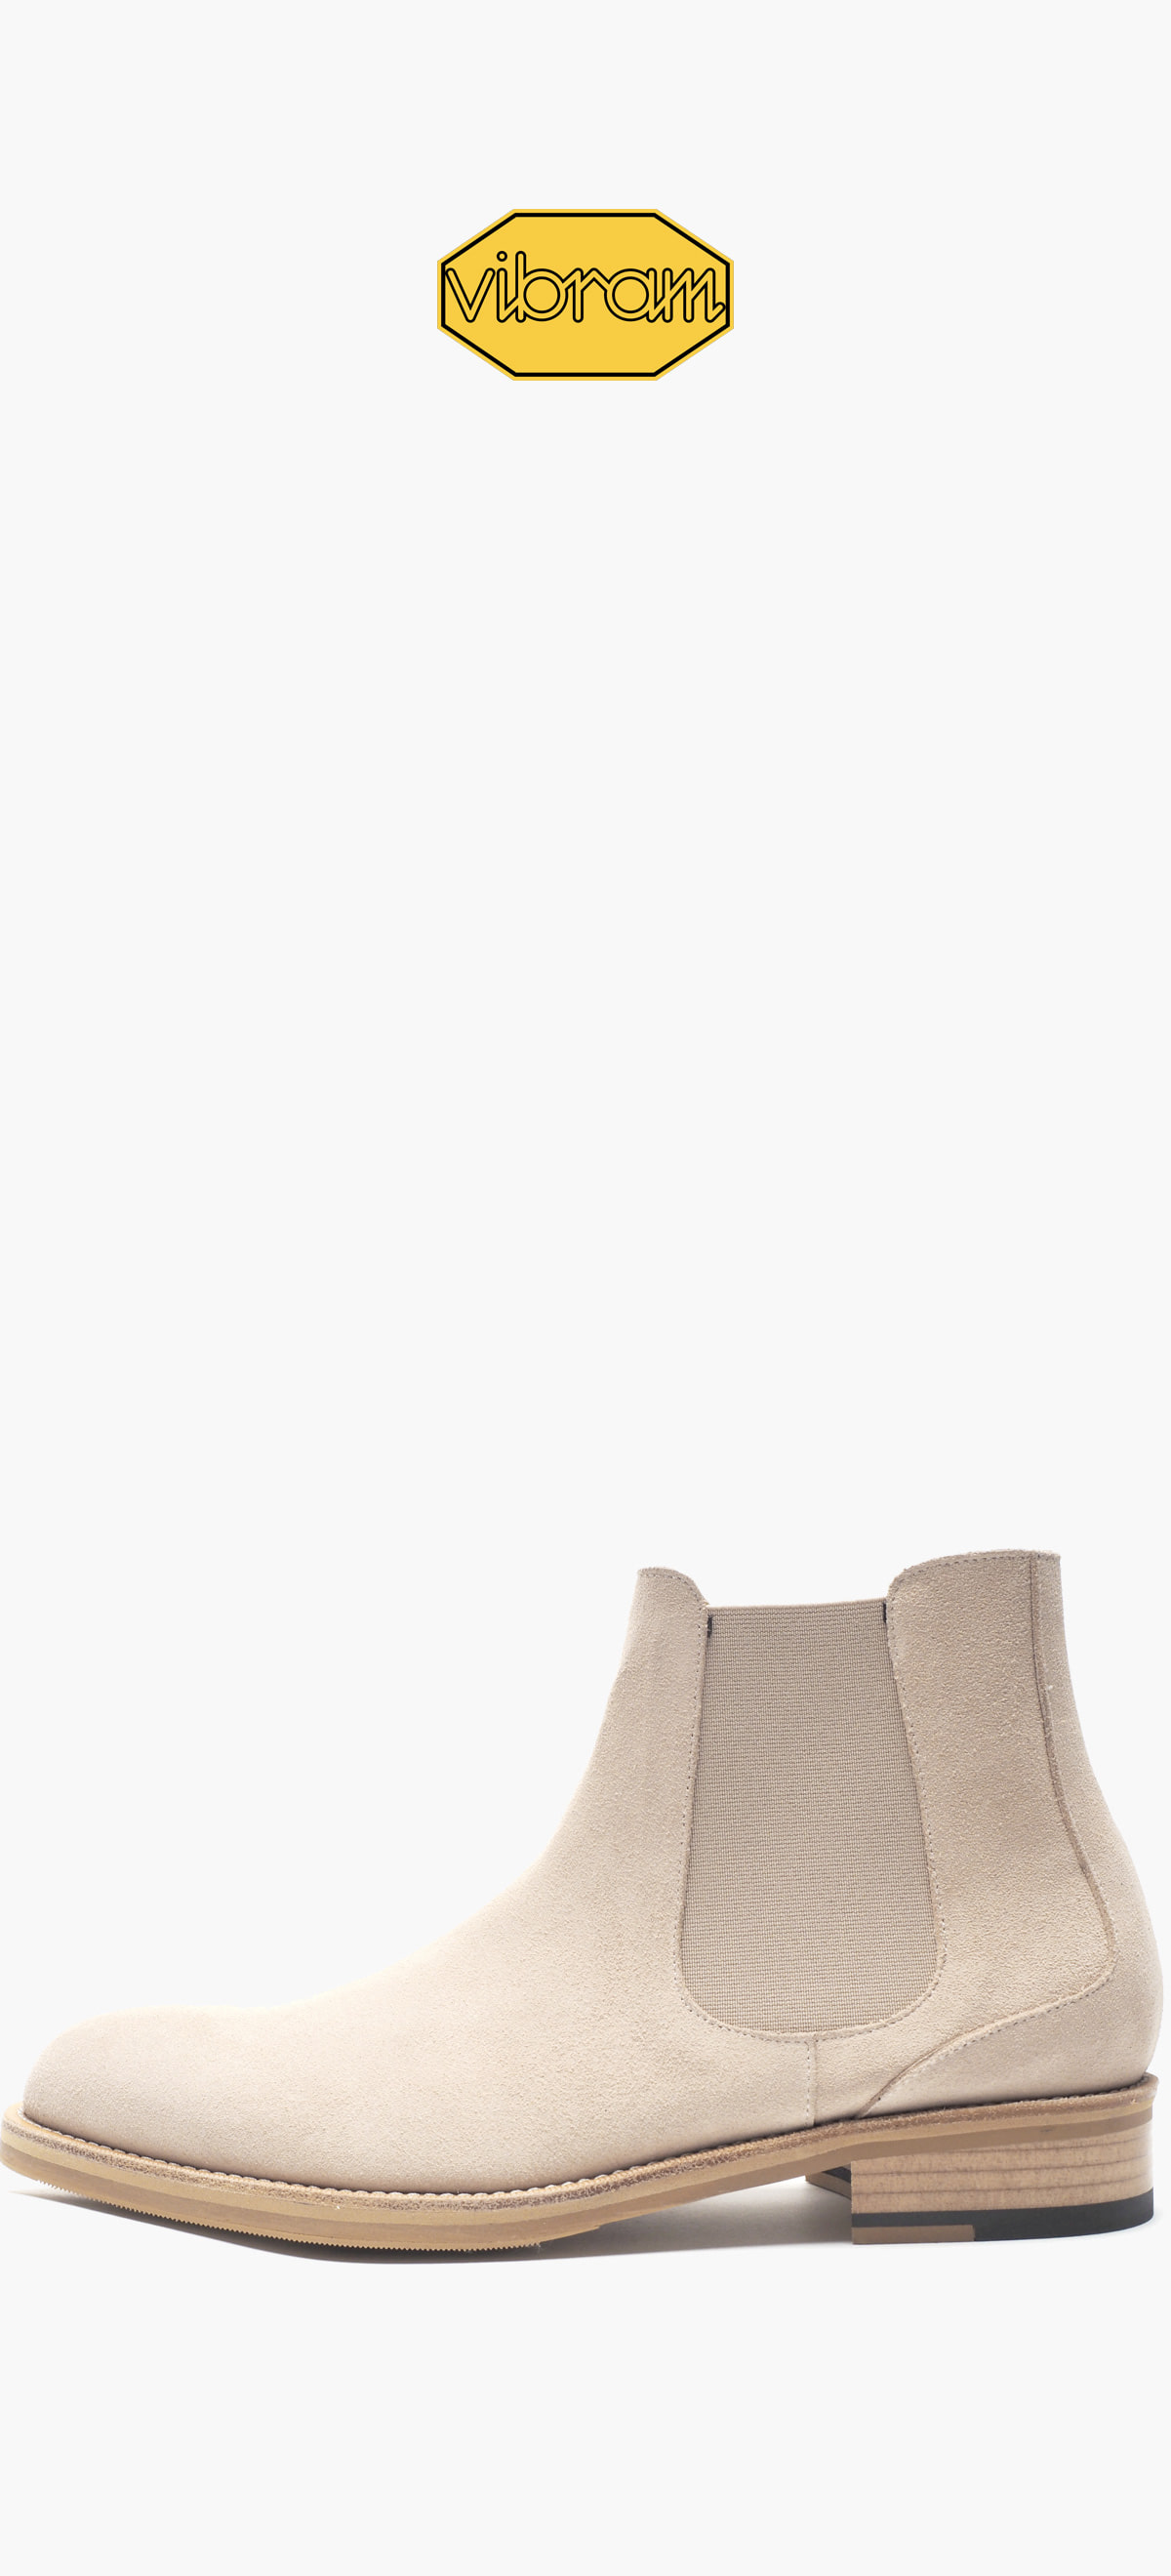 Chelsea Boots 9003-12 Ivory Suede